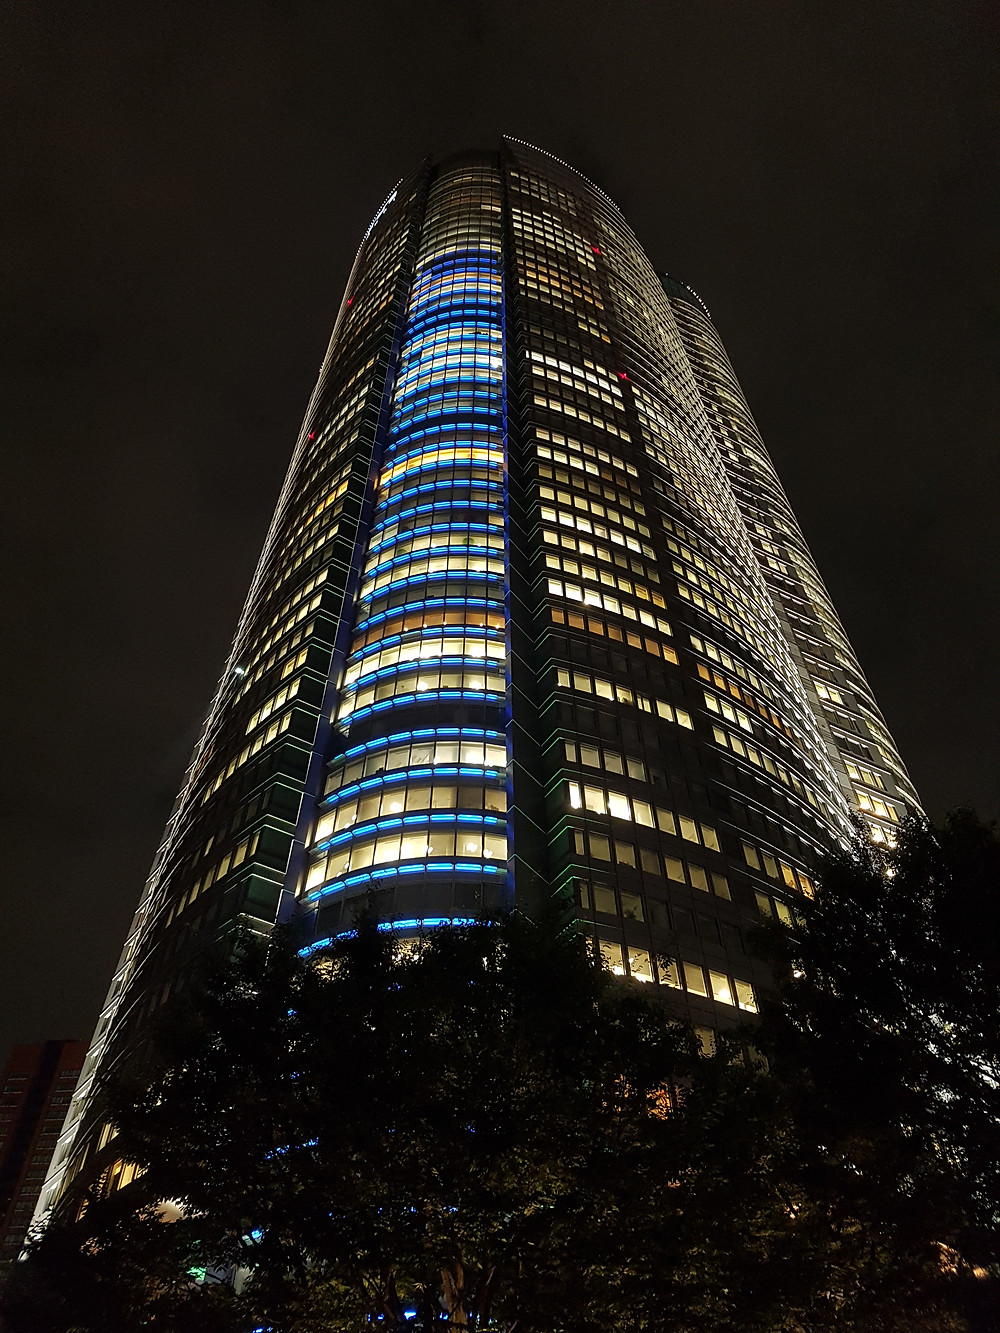 Mori-Tower in Roppongi Hills bei Nacht